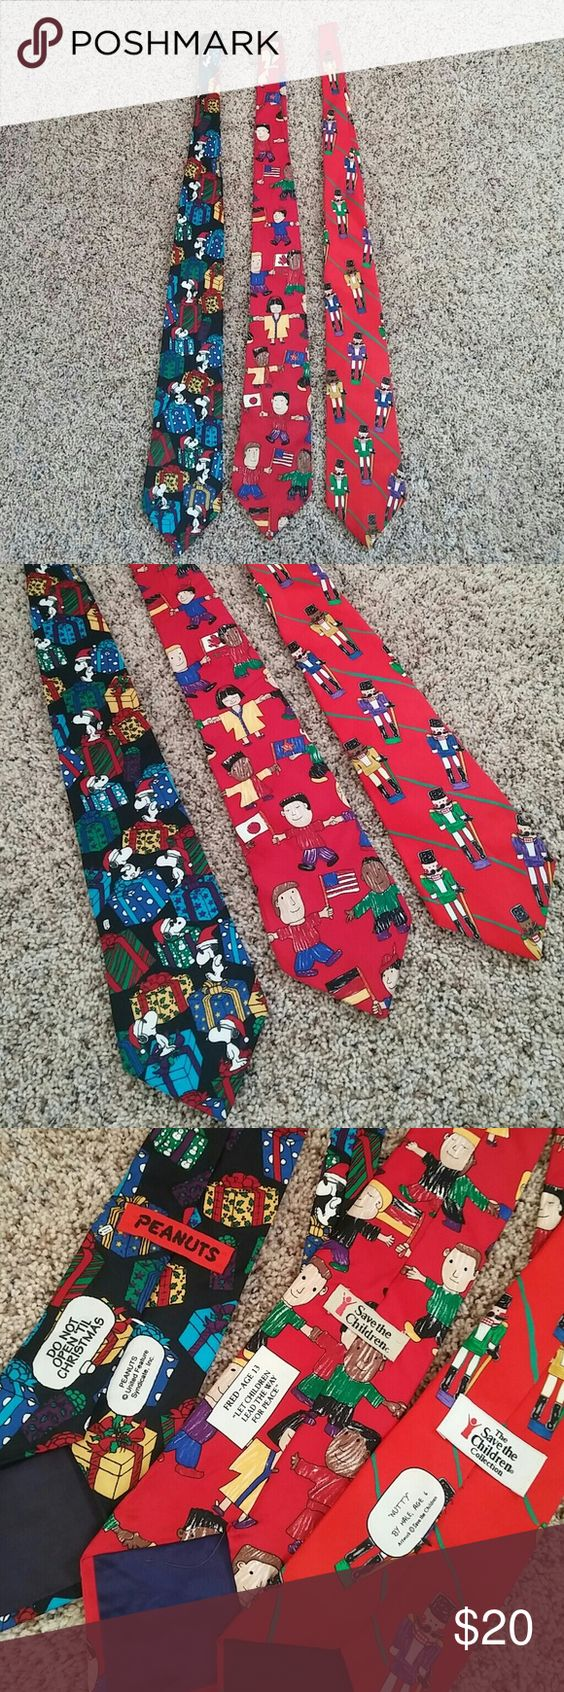 3 Tie bundle 100% Silk In very good condition 3 piece tie bundle perfect for someone that loves funky unique ties. 2 are save the children collection and one is peanuts cartoon. Accessories Ties